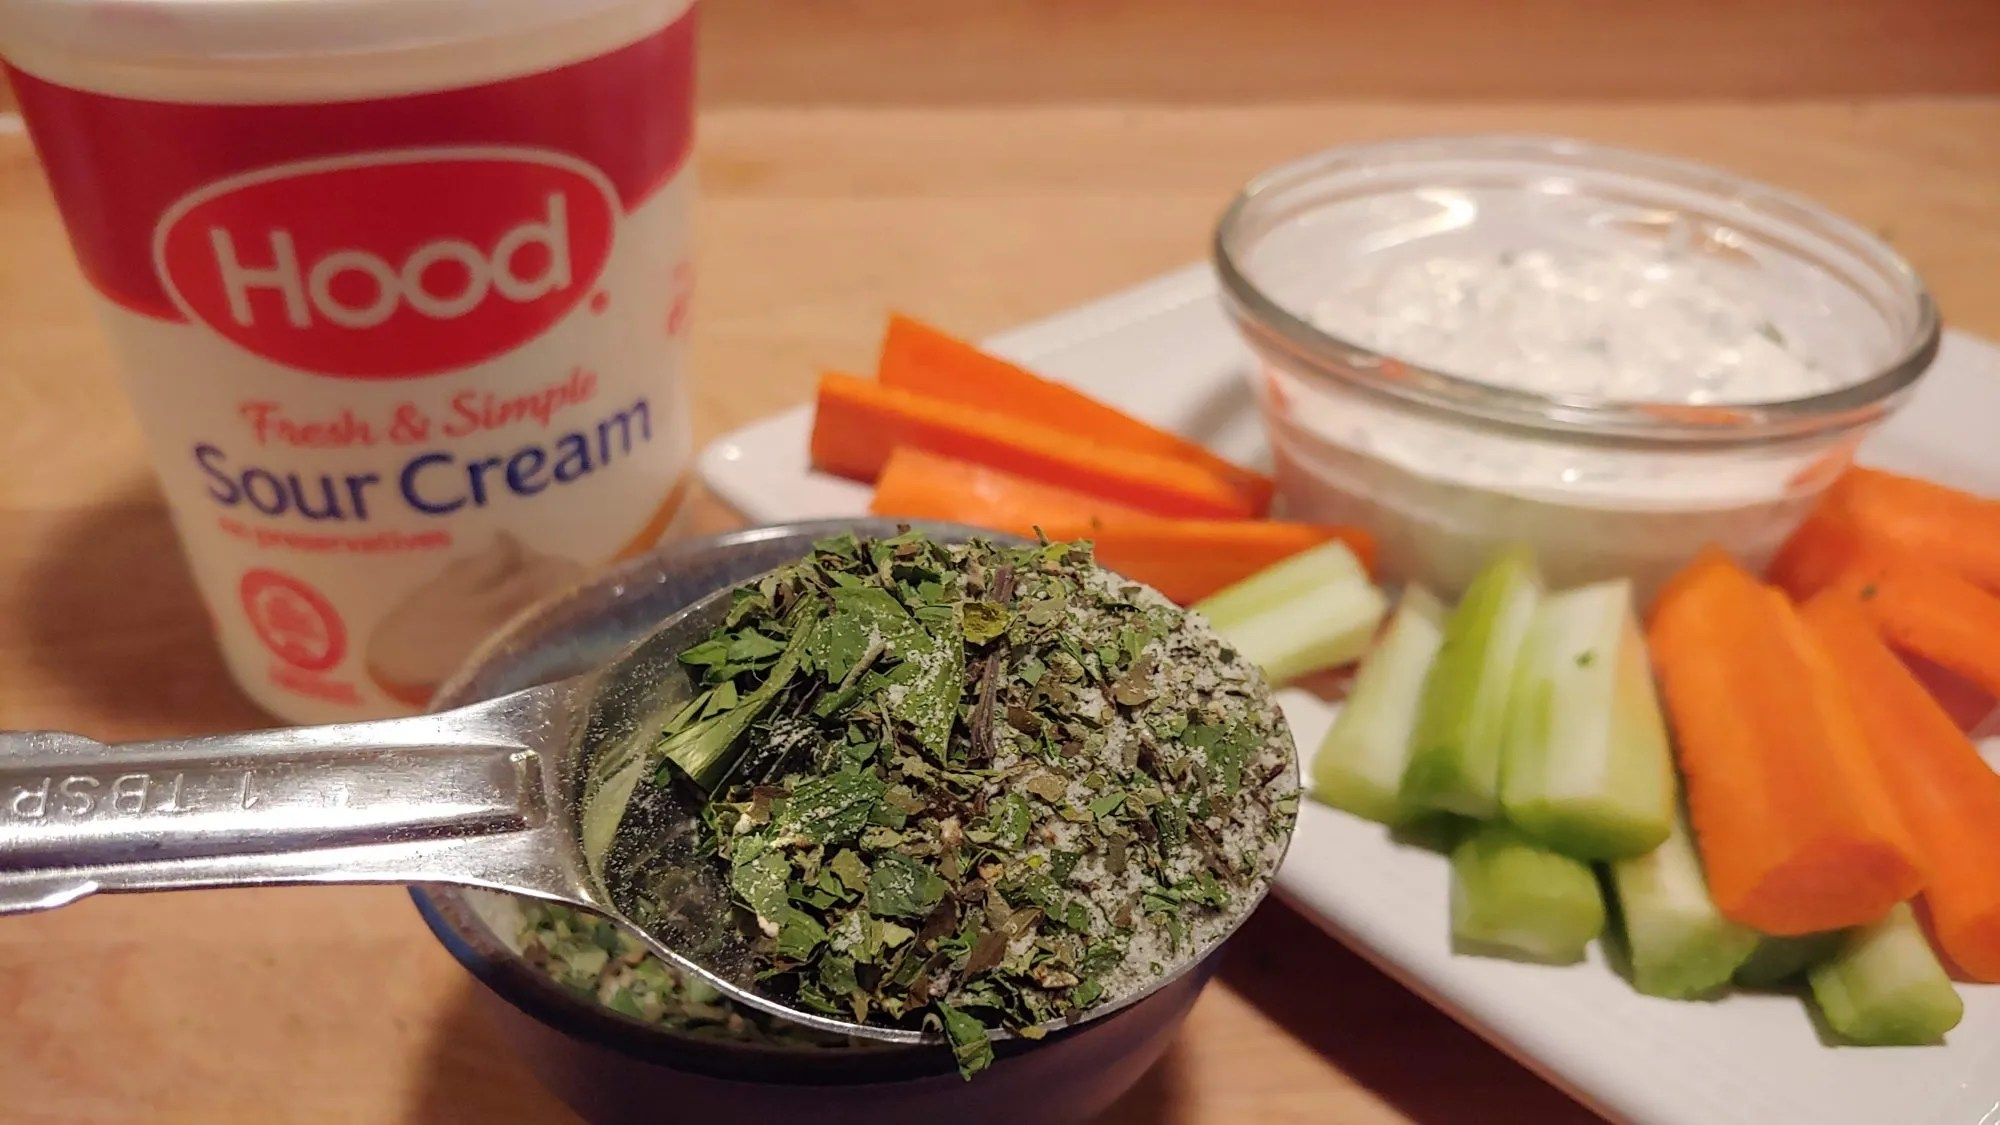 How to Make Homemade Herb Dip Mix